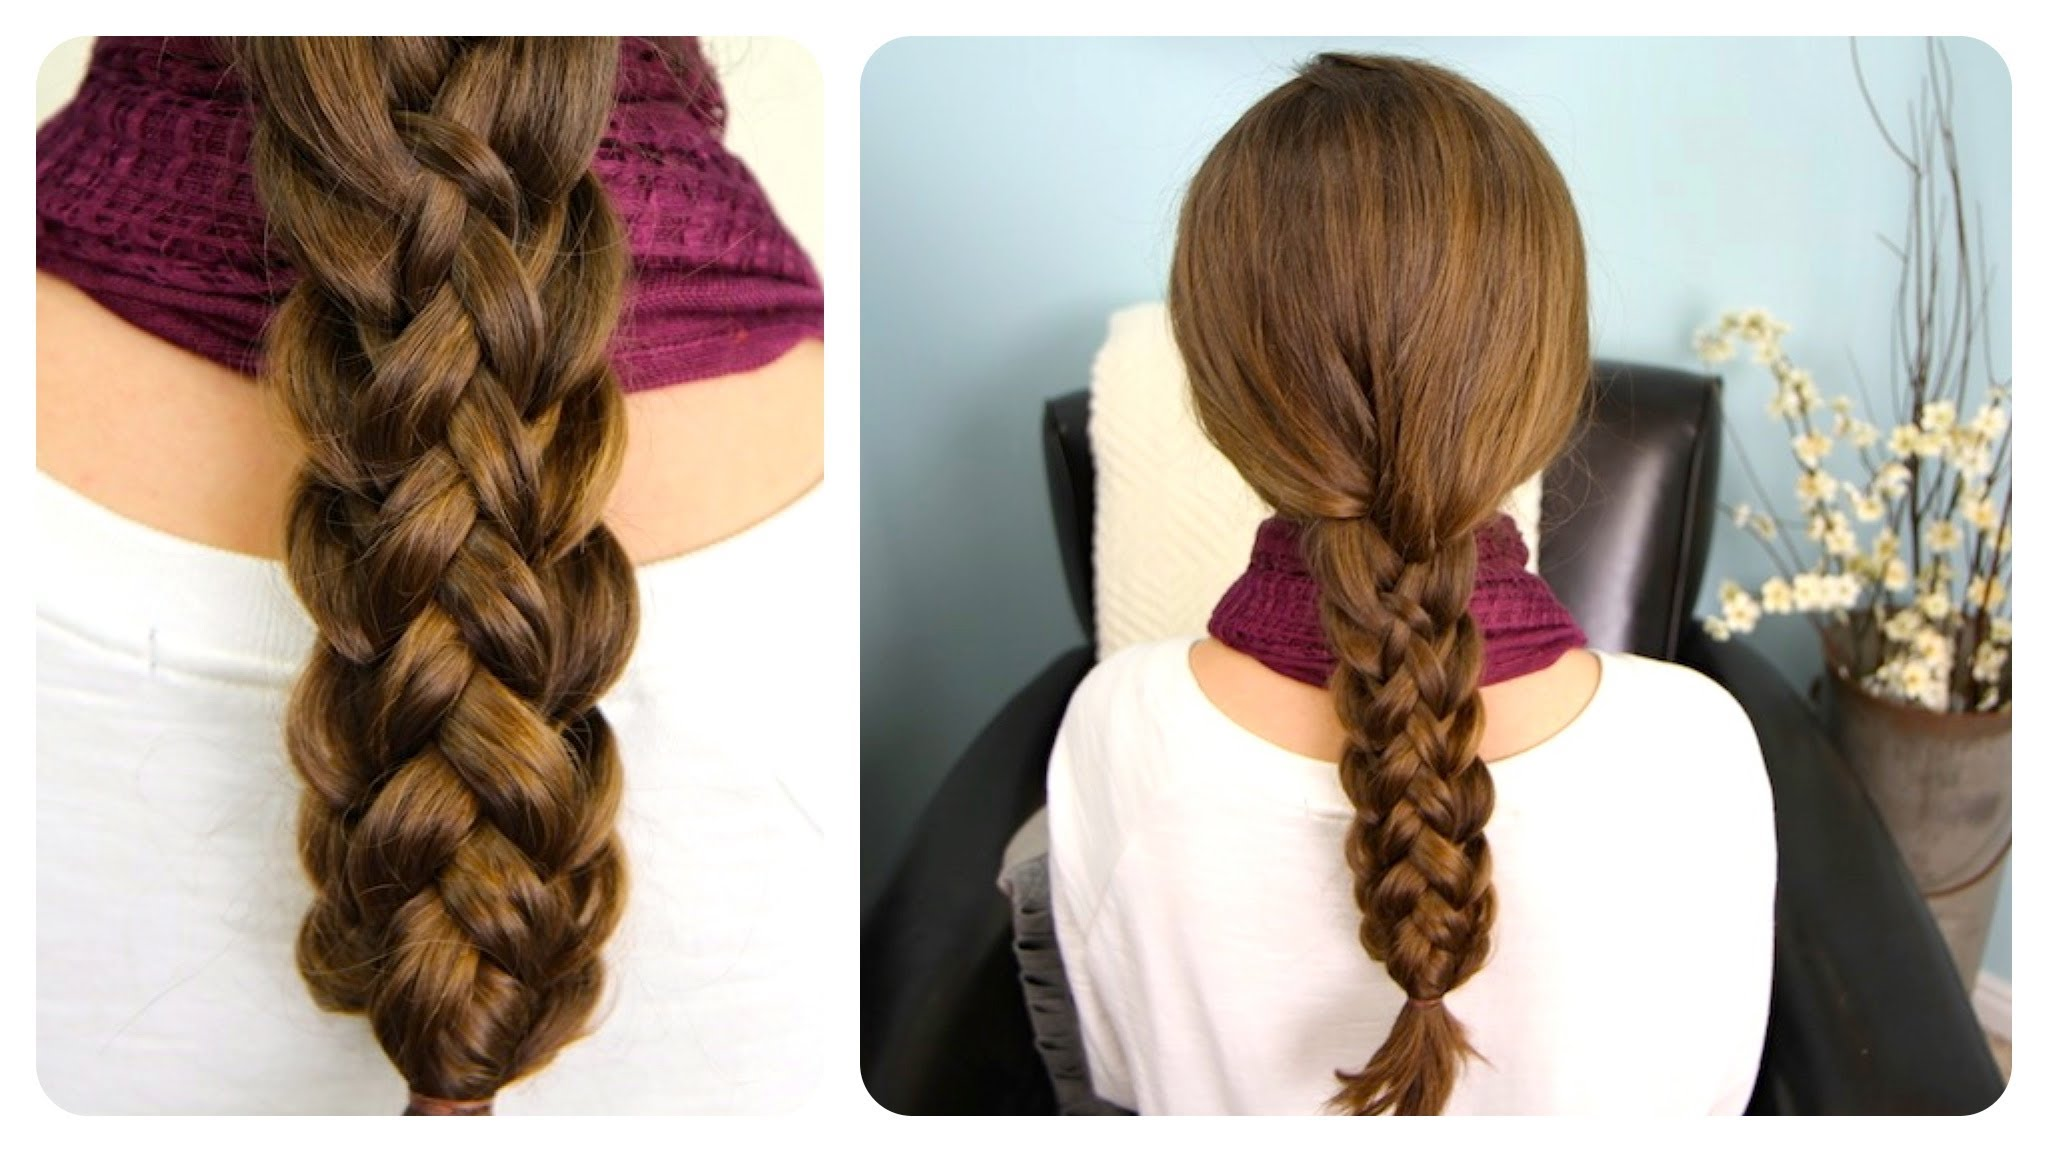 Braids by Cute Girls Hairstyles